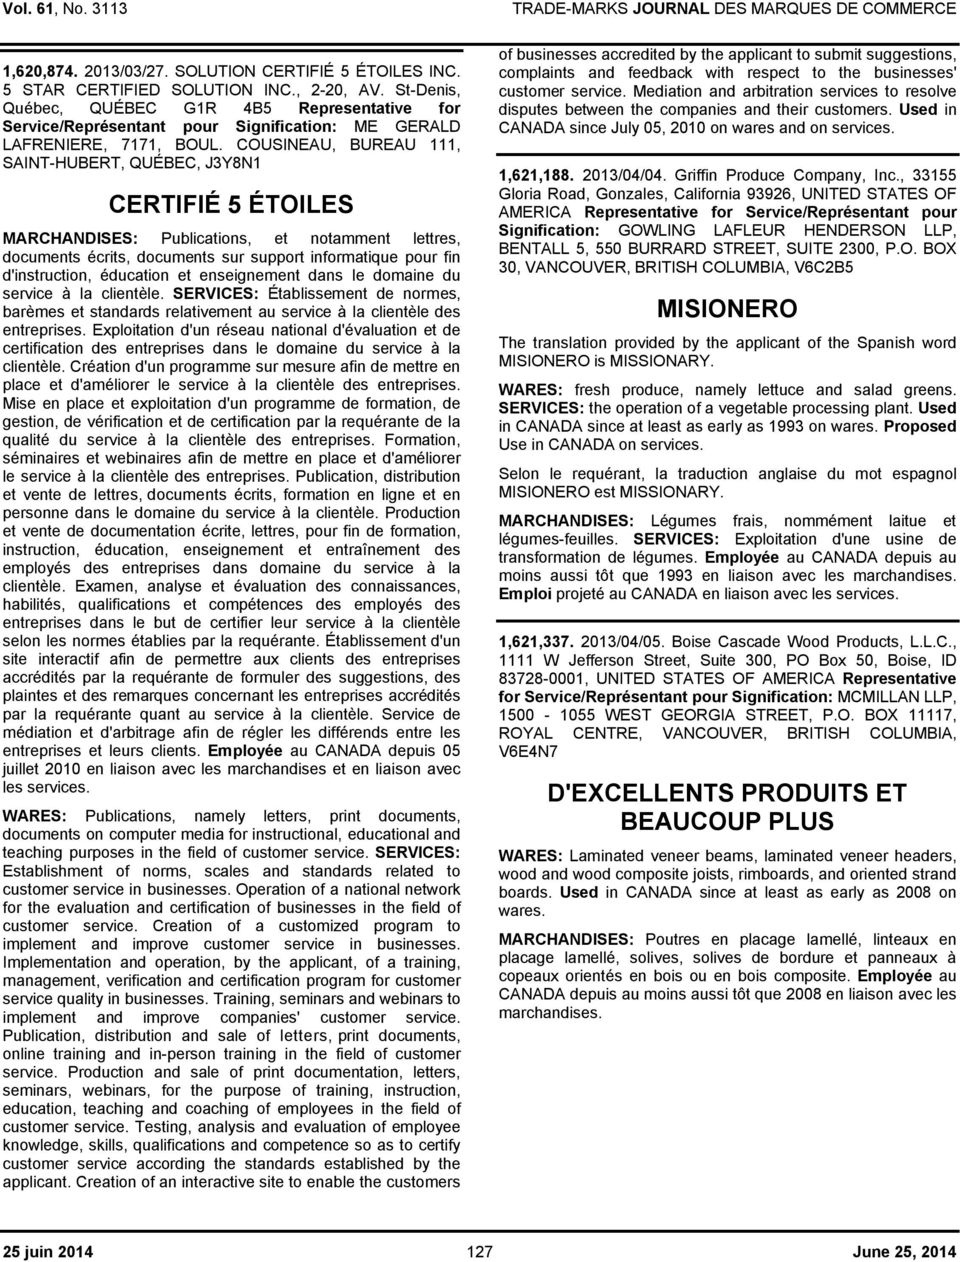 COUSINEAU, BUREAU 111, SAINT-HUBERT, QUÉBEC, J3Y8N1 CERTIFIÉ 5 ÉTOILES MARCHANDISES: Publications, et notamment lettres, documents écrits, documents sur support informatique pour fin d'instruction,